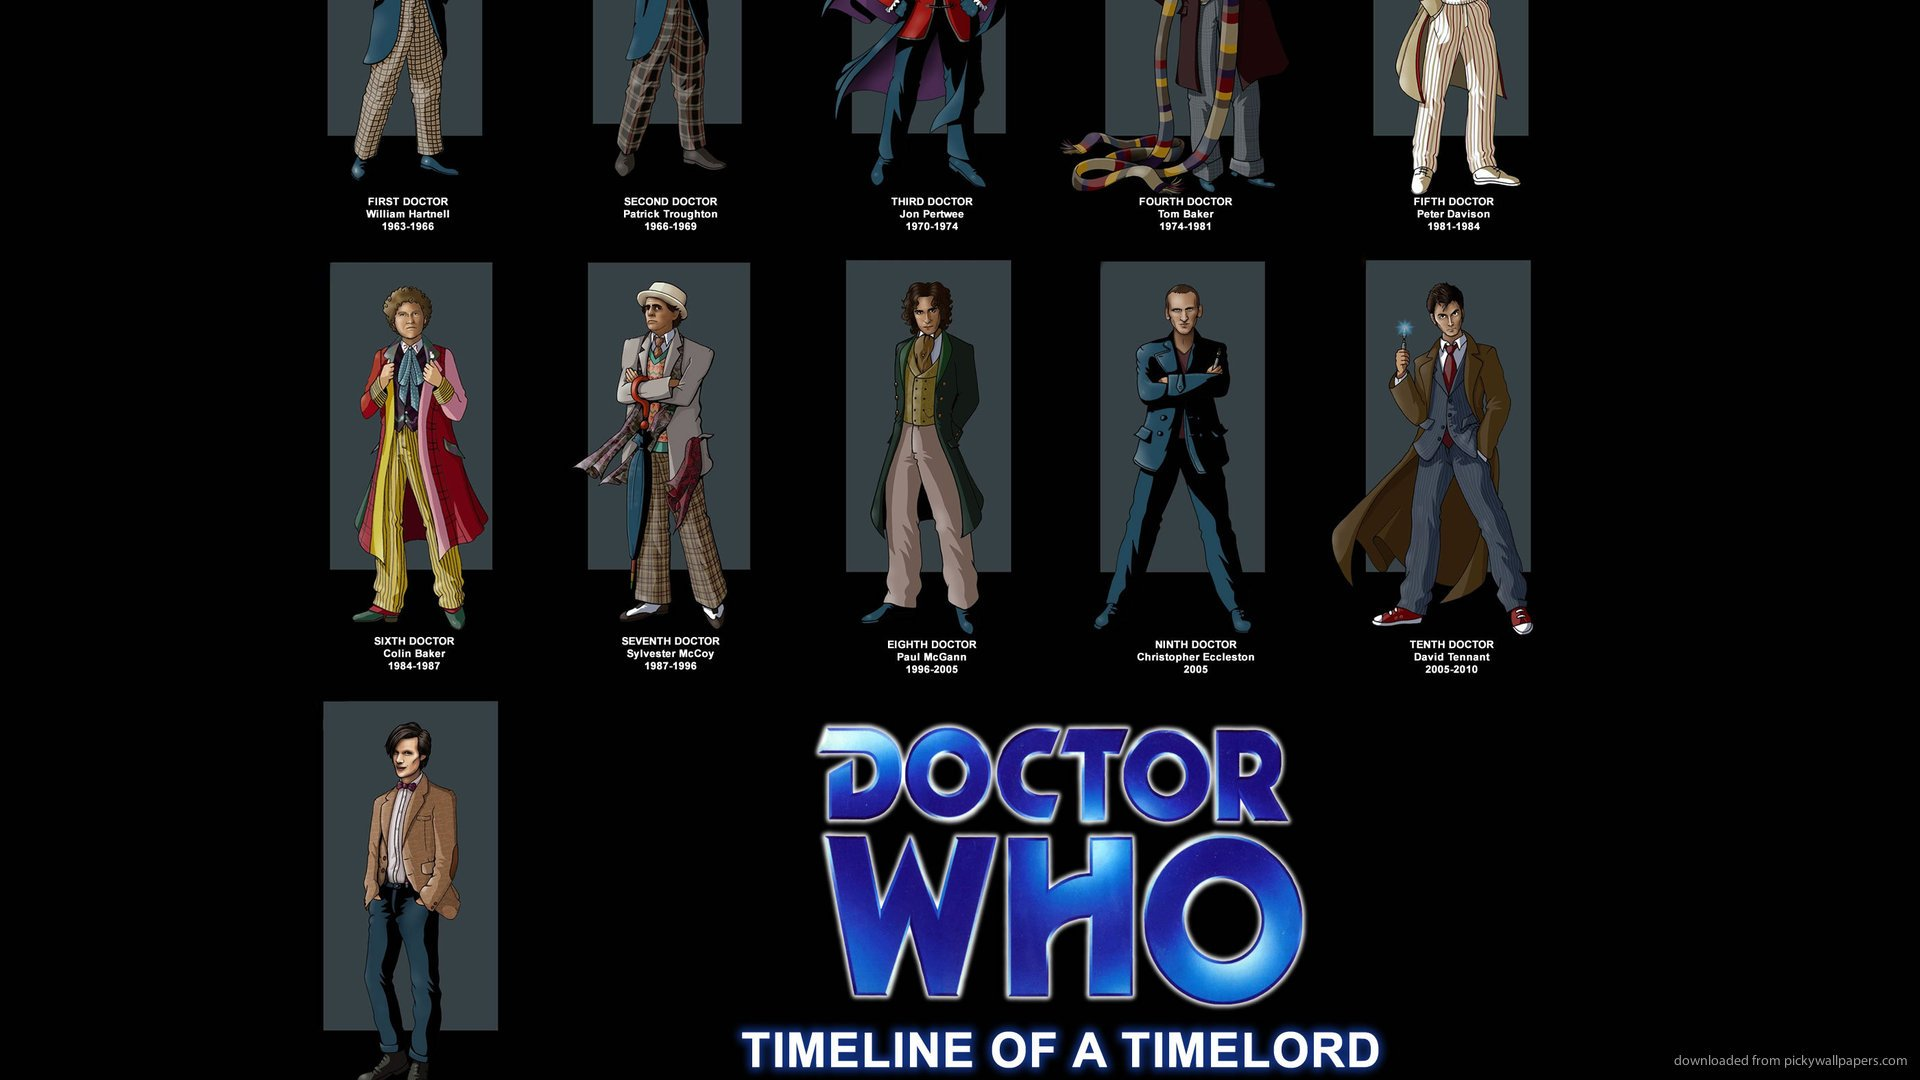 Doctor Who Timeline Of A Timelord Picture For iPhone Blackberry iPad 1920x1080